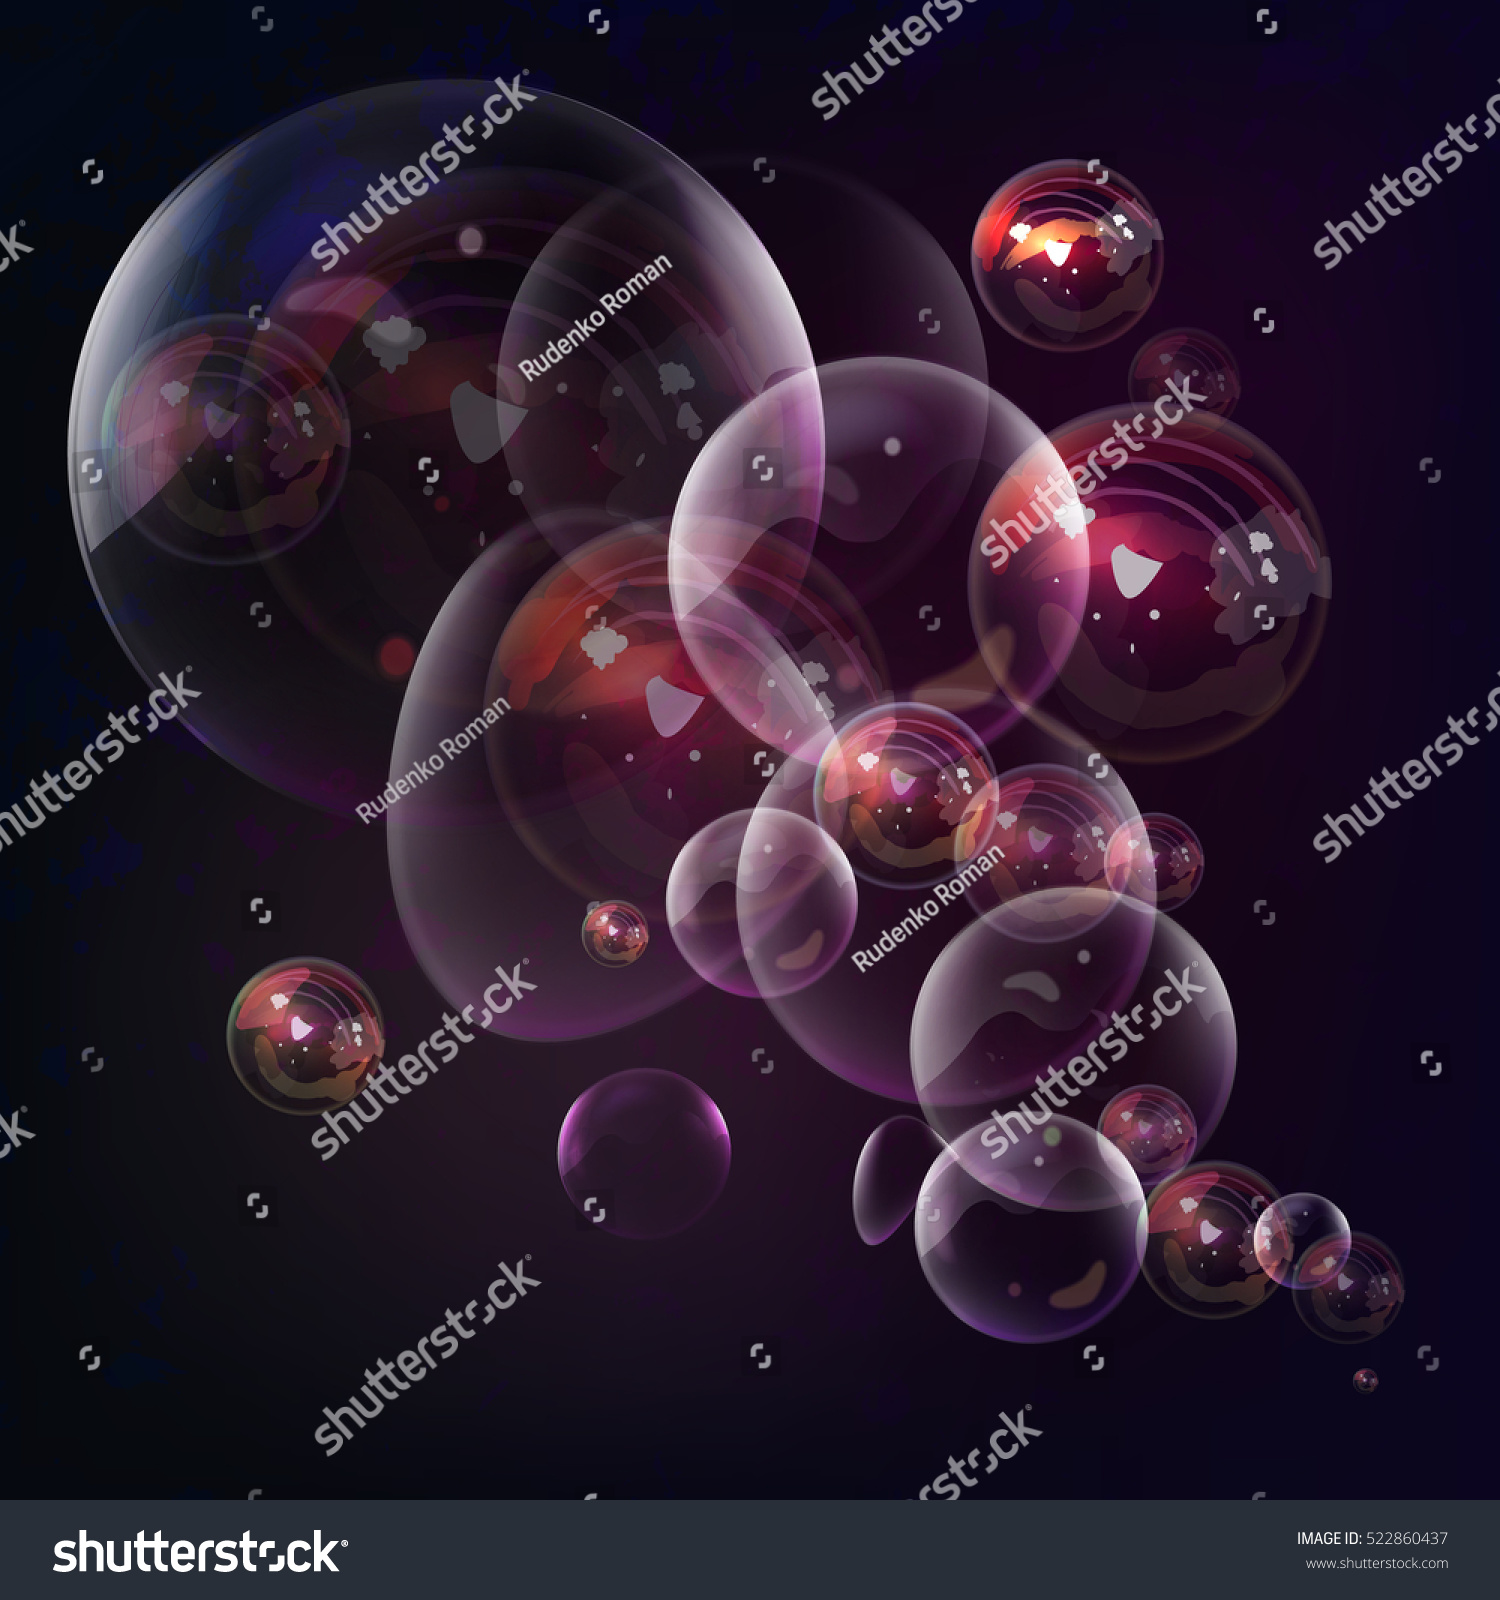 Soap bubble background download free vector art stock graphics -  Vectors Illustrations Footage Music Soap Bubbles On Purple Background In Vector Transparent Water Ball With Shine And Reflection For